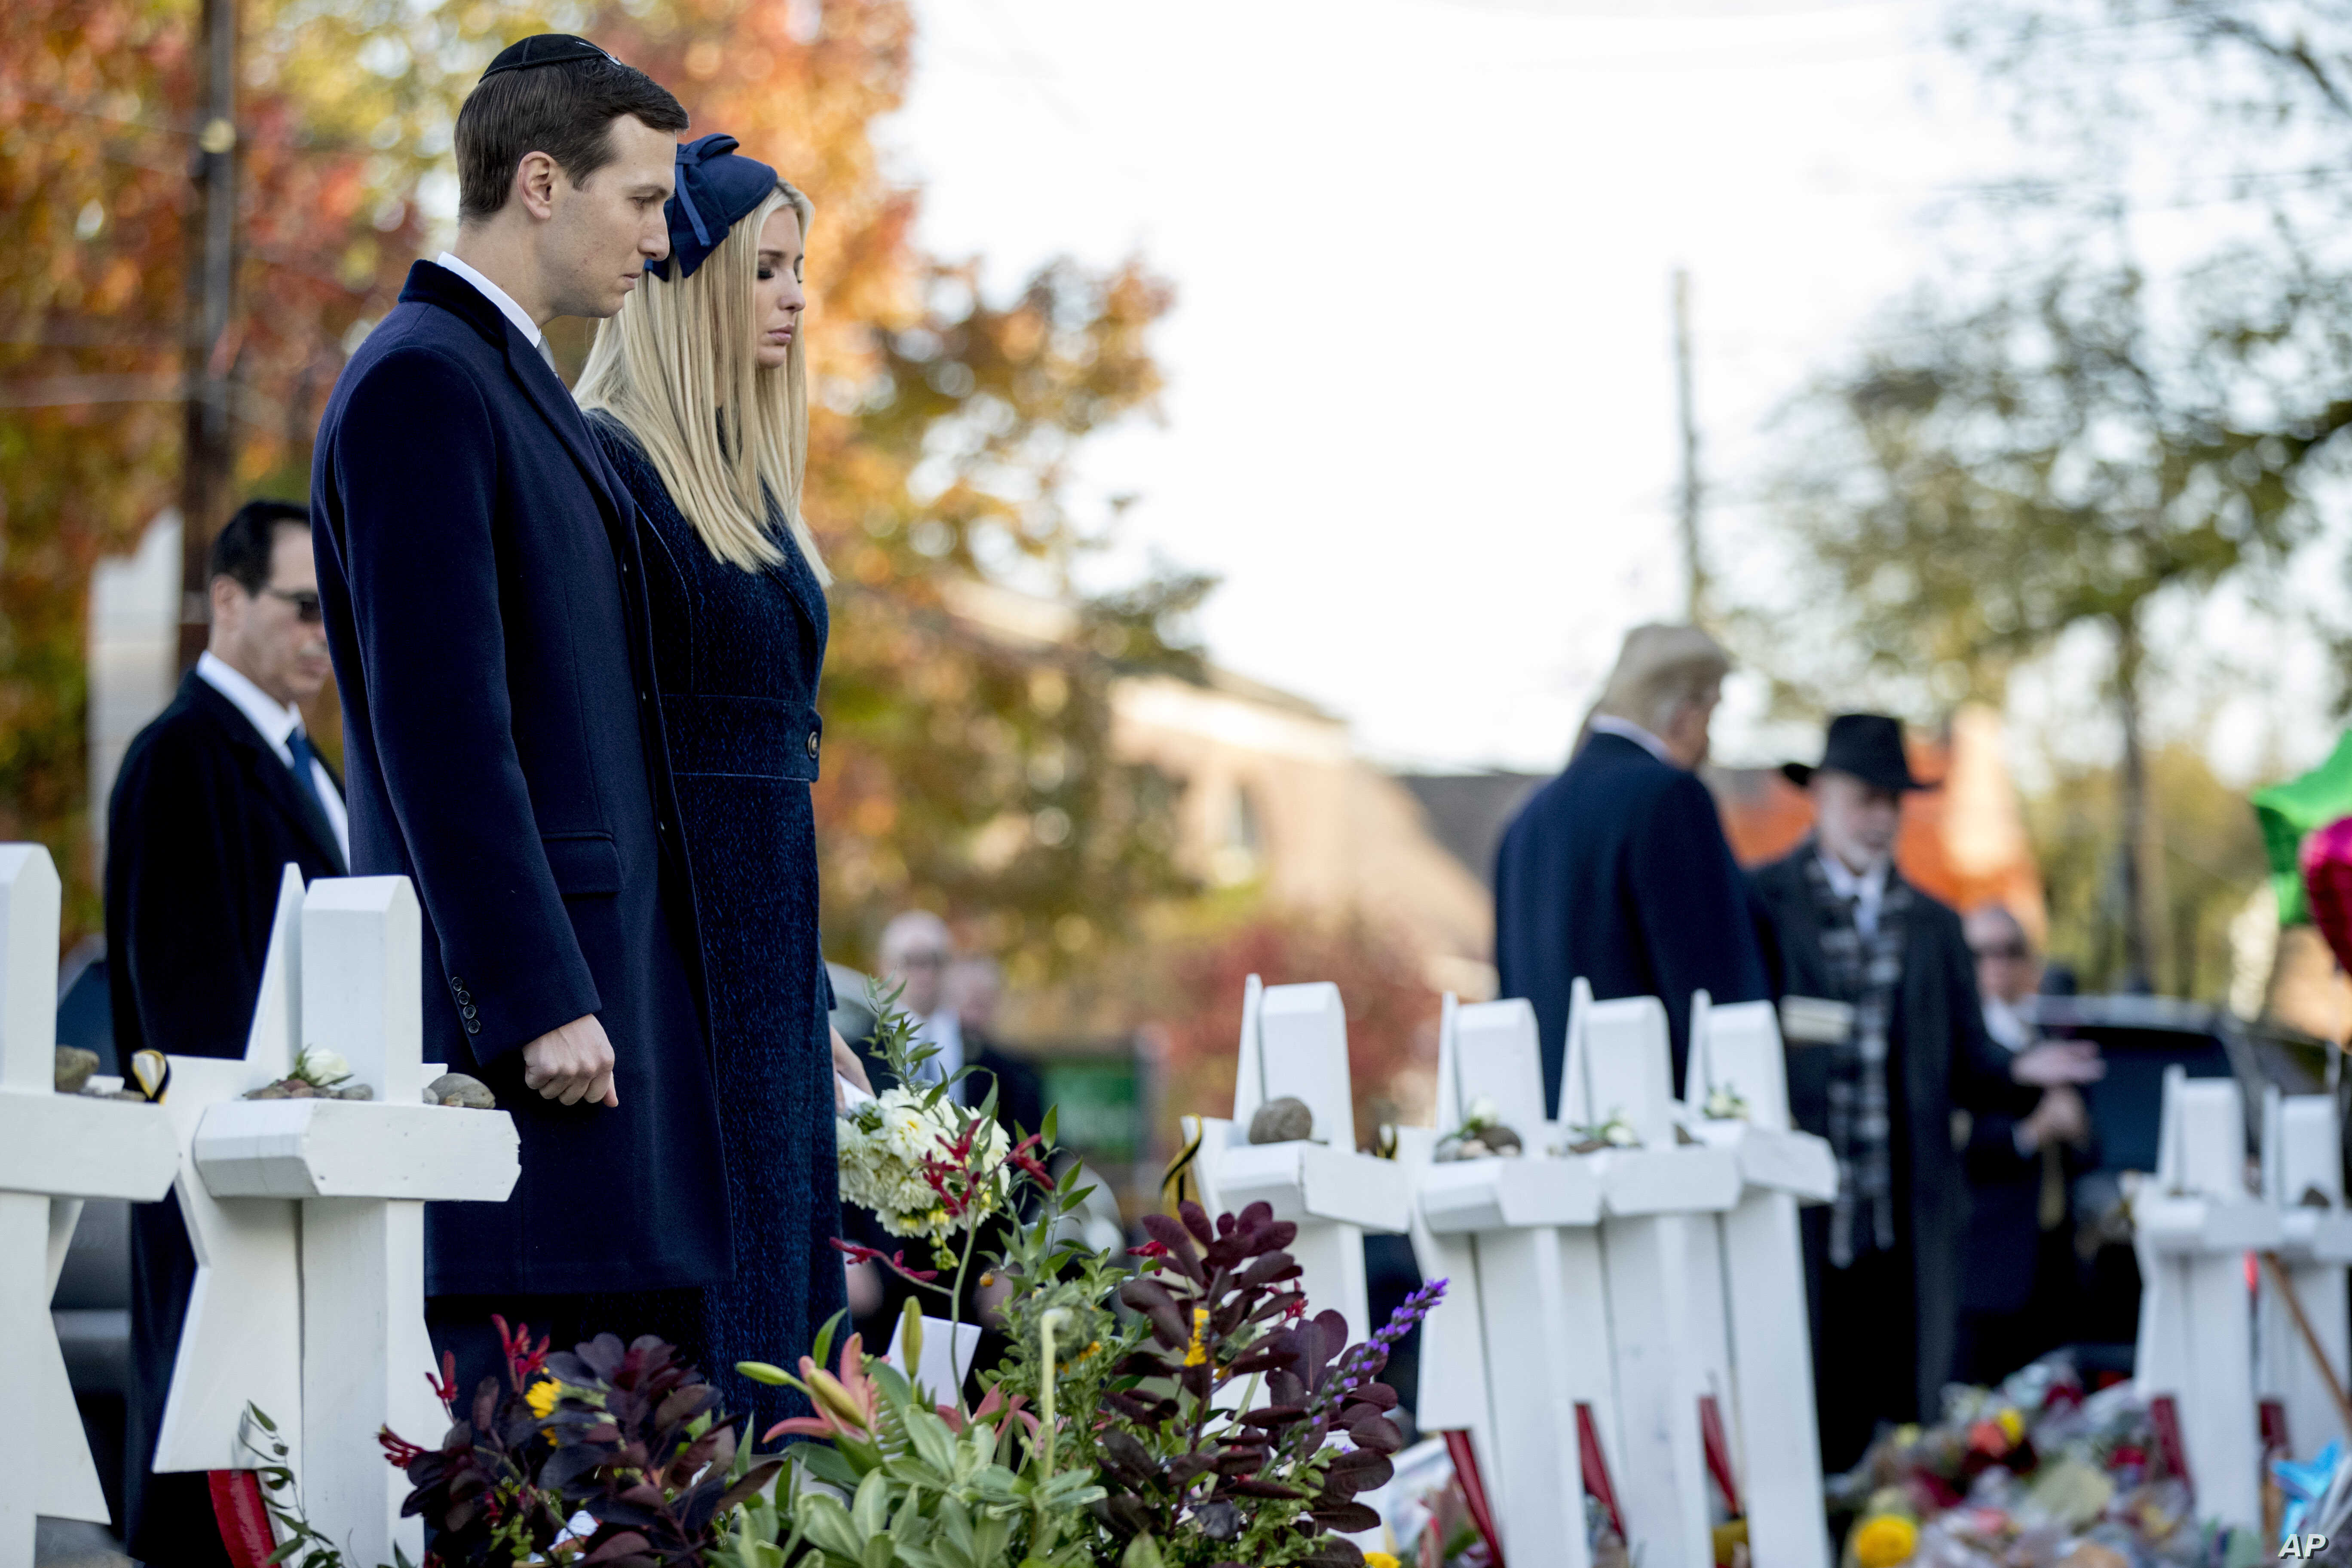 President Donald Trump's White House senior adviser Jared Kushner and Ivanka Trump, the daughter of President Donald Trump, second from left, stand at a memorial for those killed at the Tree of Life Synagogue in Pittsburgh, Oct. 30, 2018.